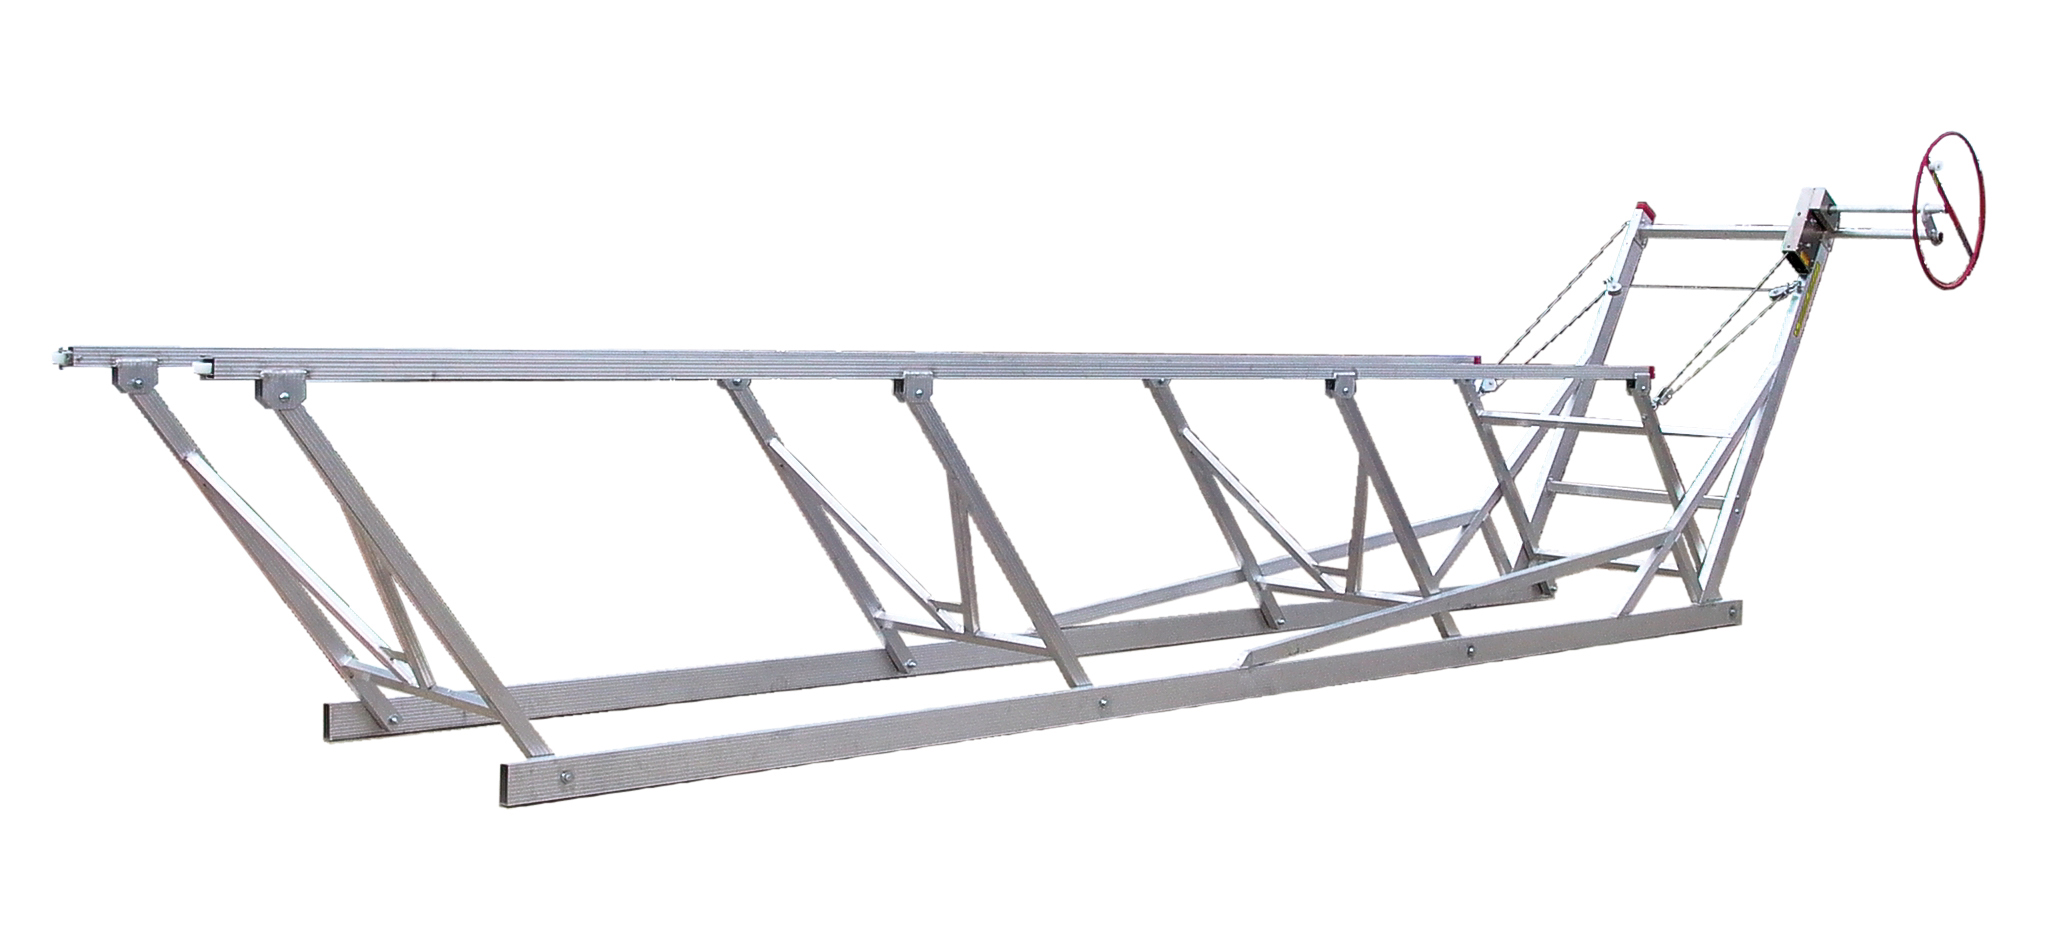 Cantilever pontoon lifts for Boat lift motors for sale